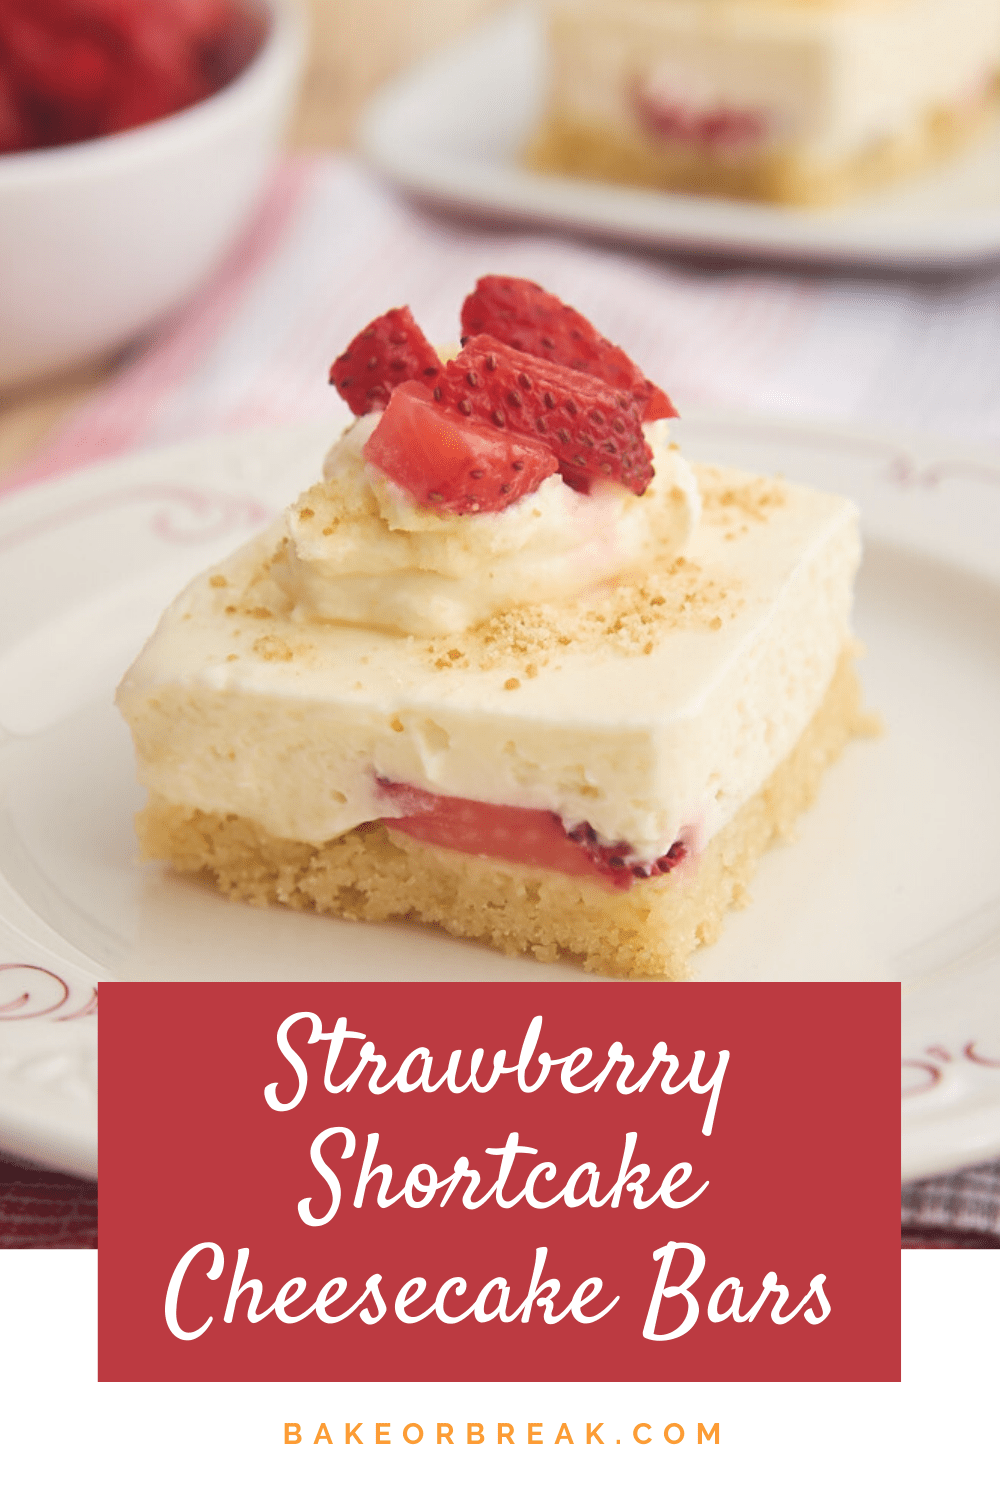 Strawberry Shortcake Cheesecake Bars bakeorbreak.com